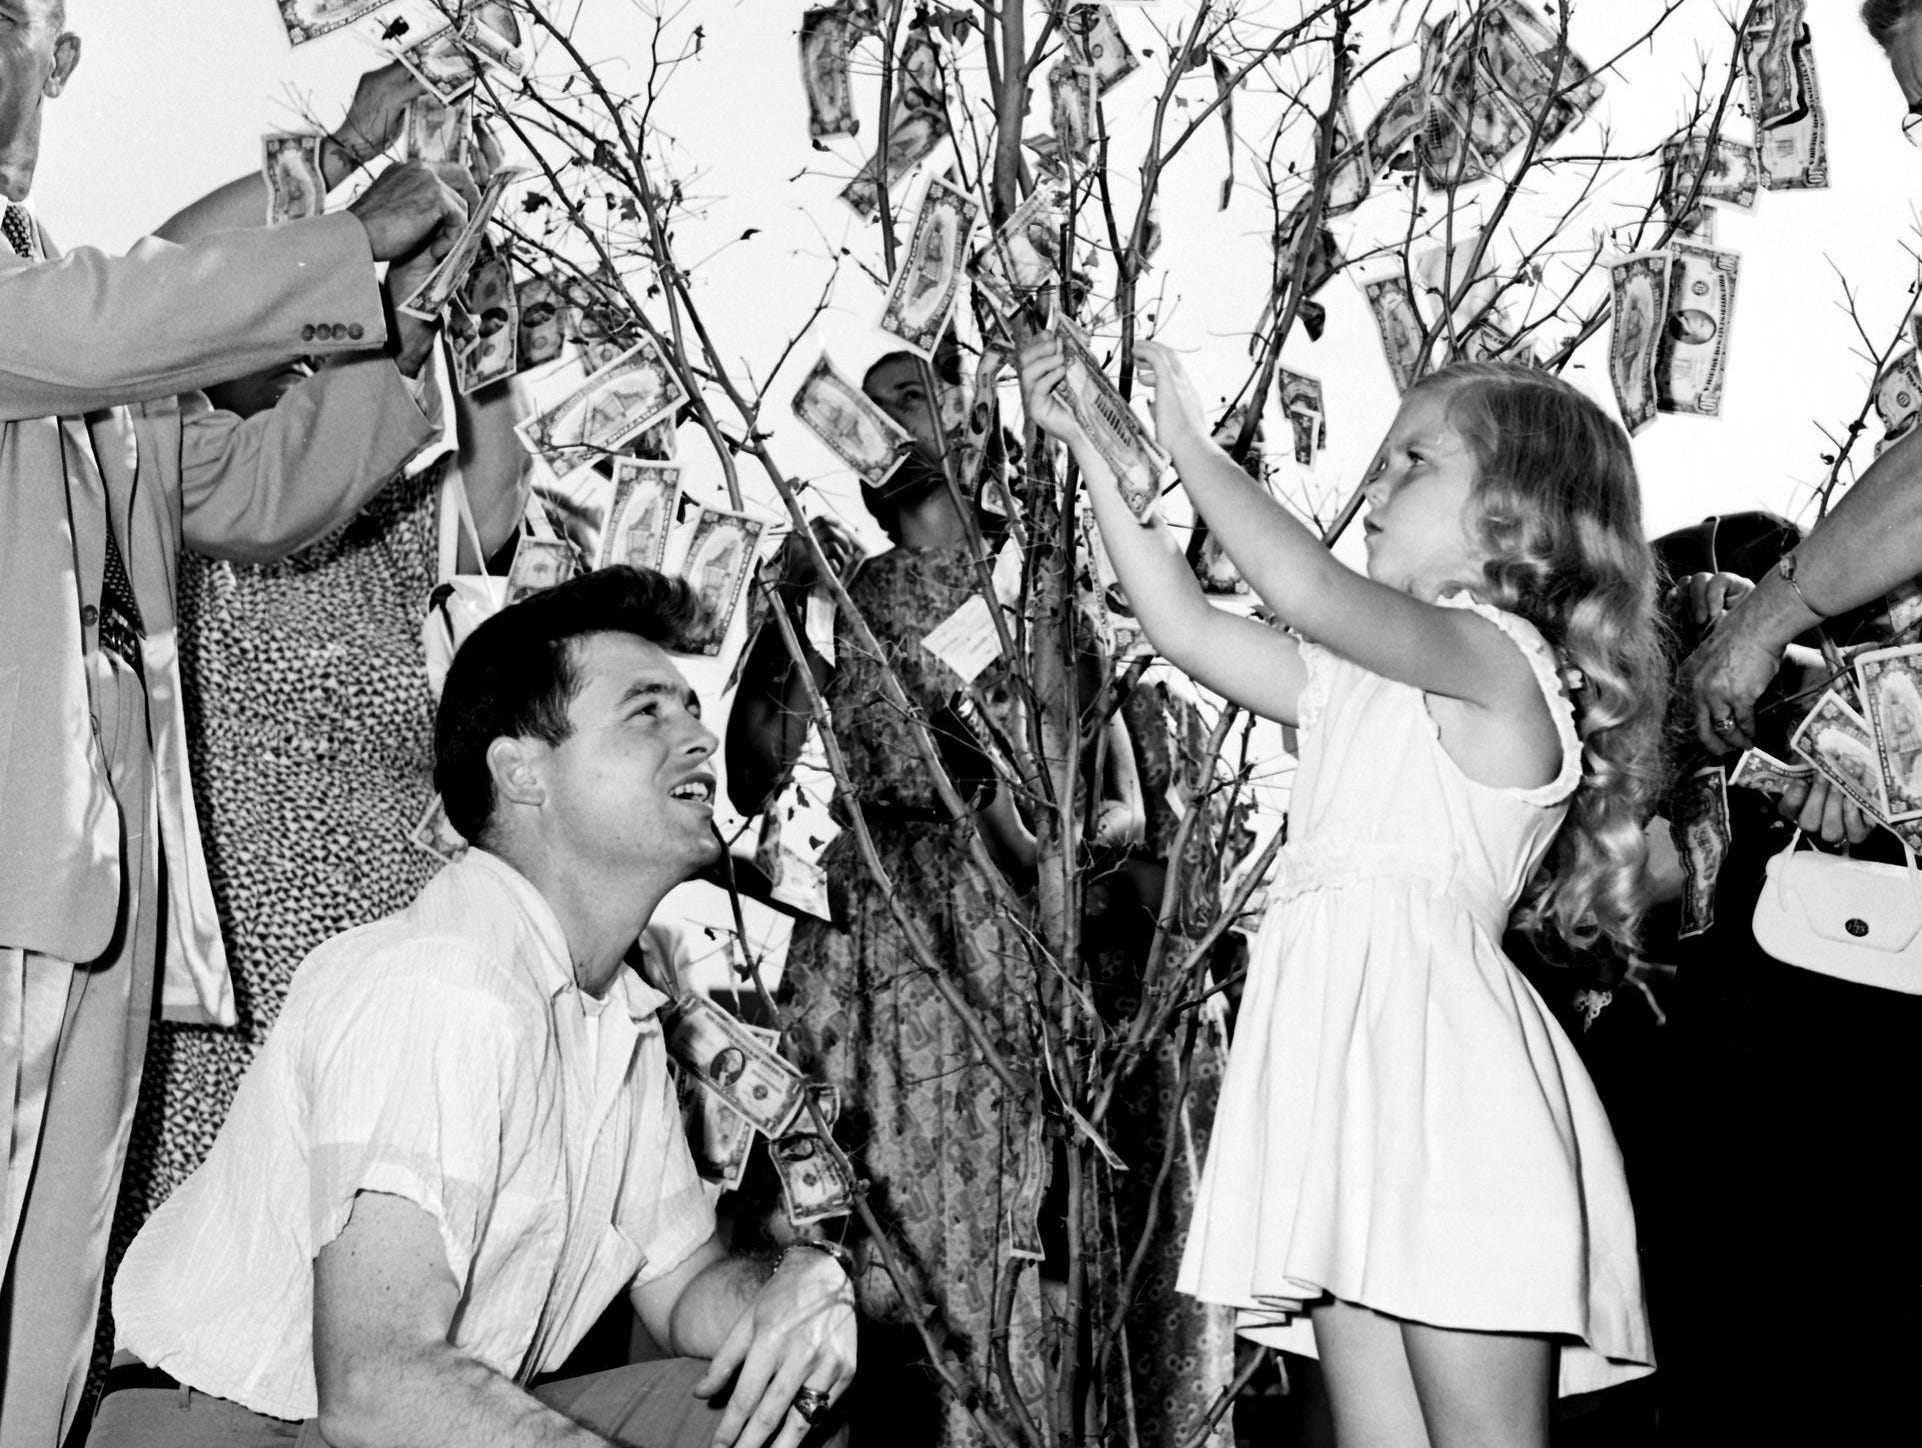 To disprove an old saying and to swell a building fund, McLean Baptist Church members of all ages made money grow on a tree on 9 Aug 1953. Taping on bills after the church?s ground-breaking ceremony were J. Keith Davidson of 773 Hawthorne and his 5-year-old daughter, Donna Davidson.